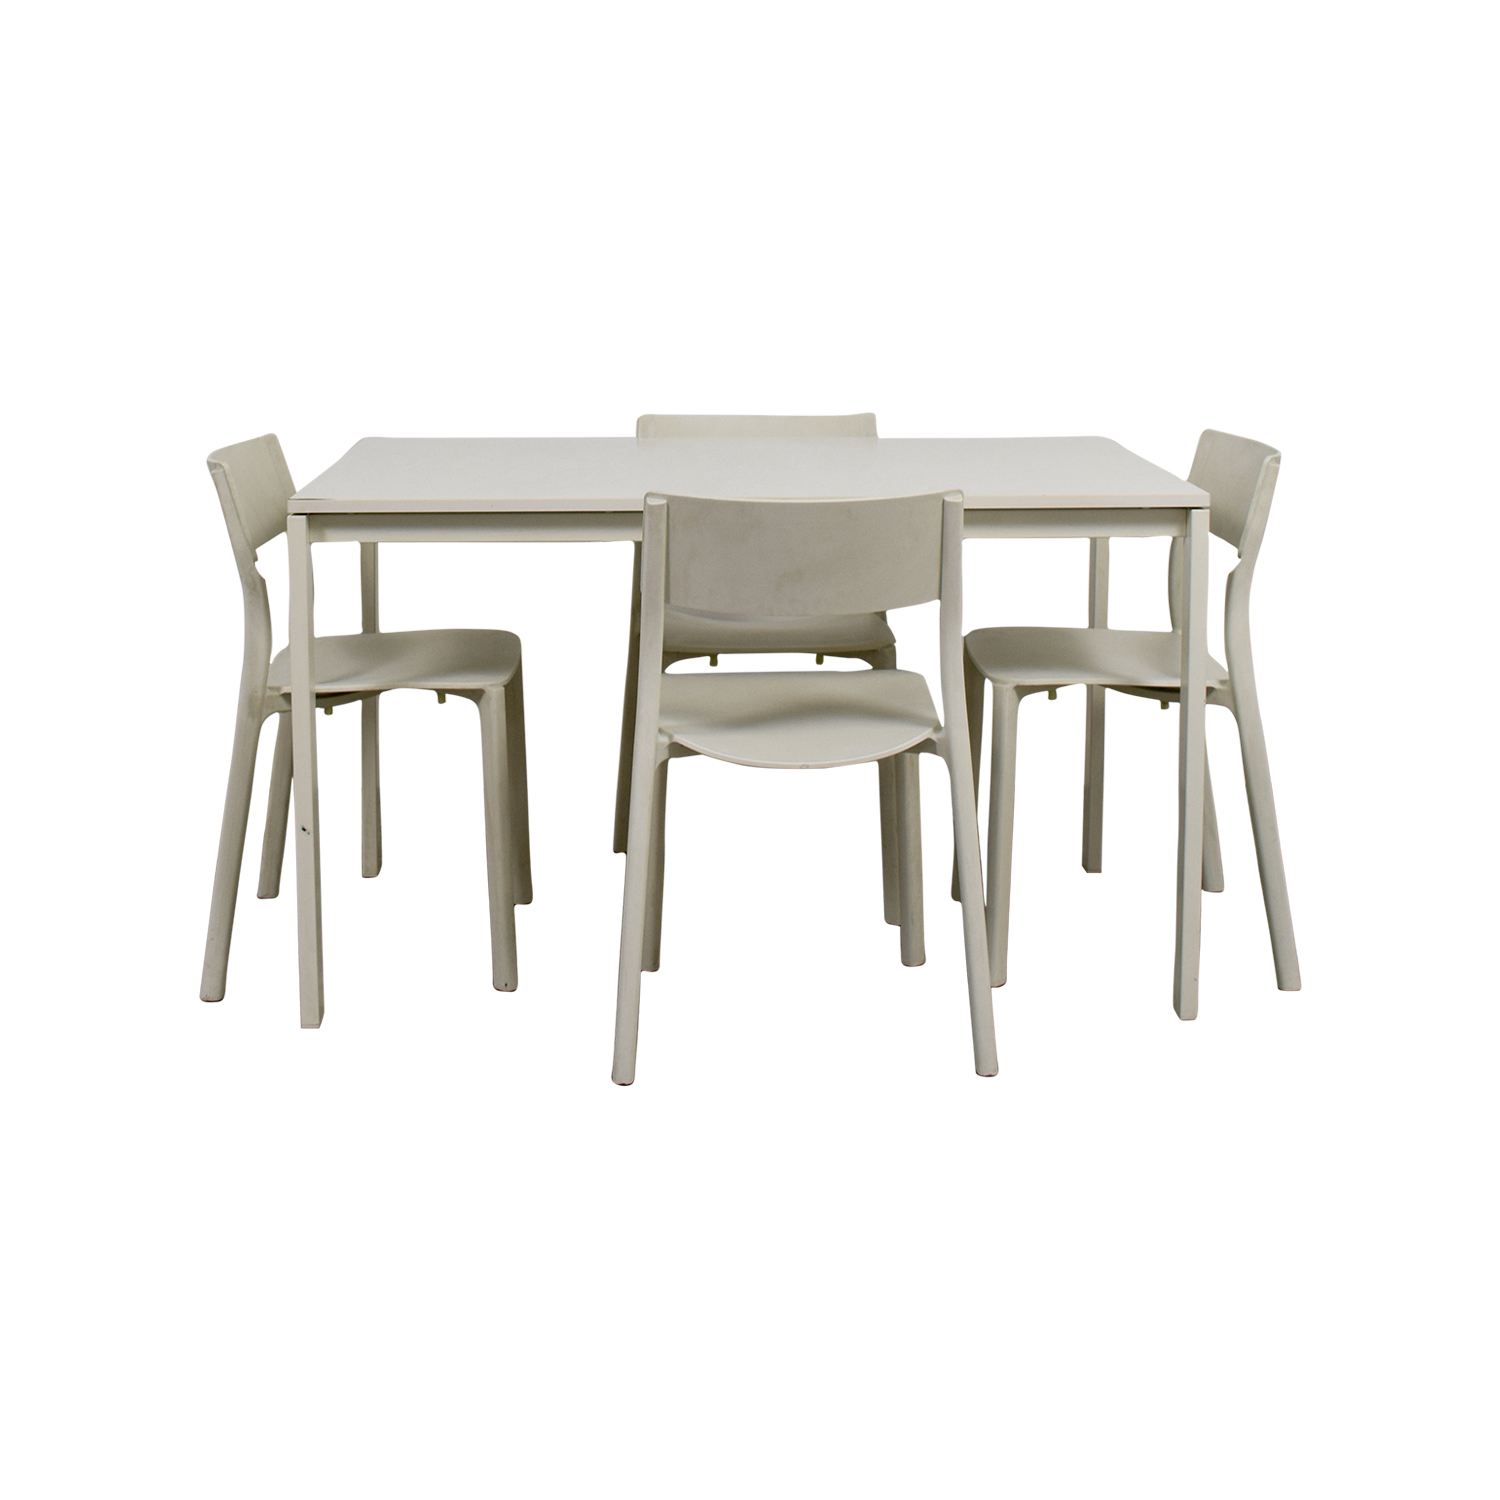 White Kitchen Tables And Chairs: Dining Sets: Used Dining Sets For Sale